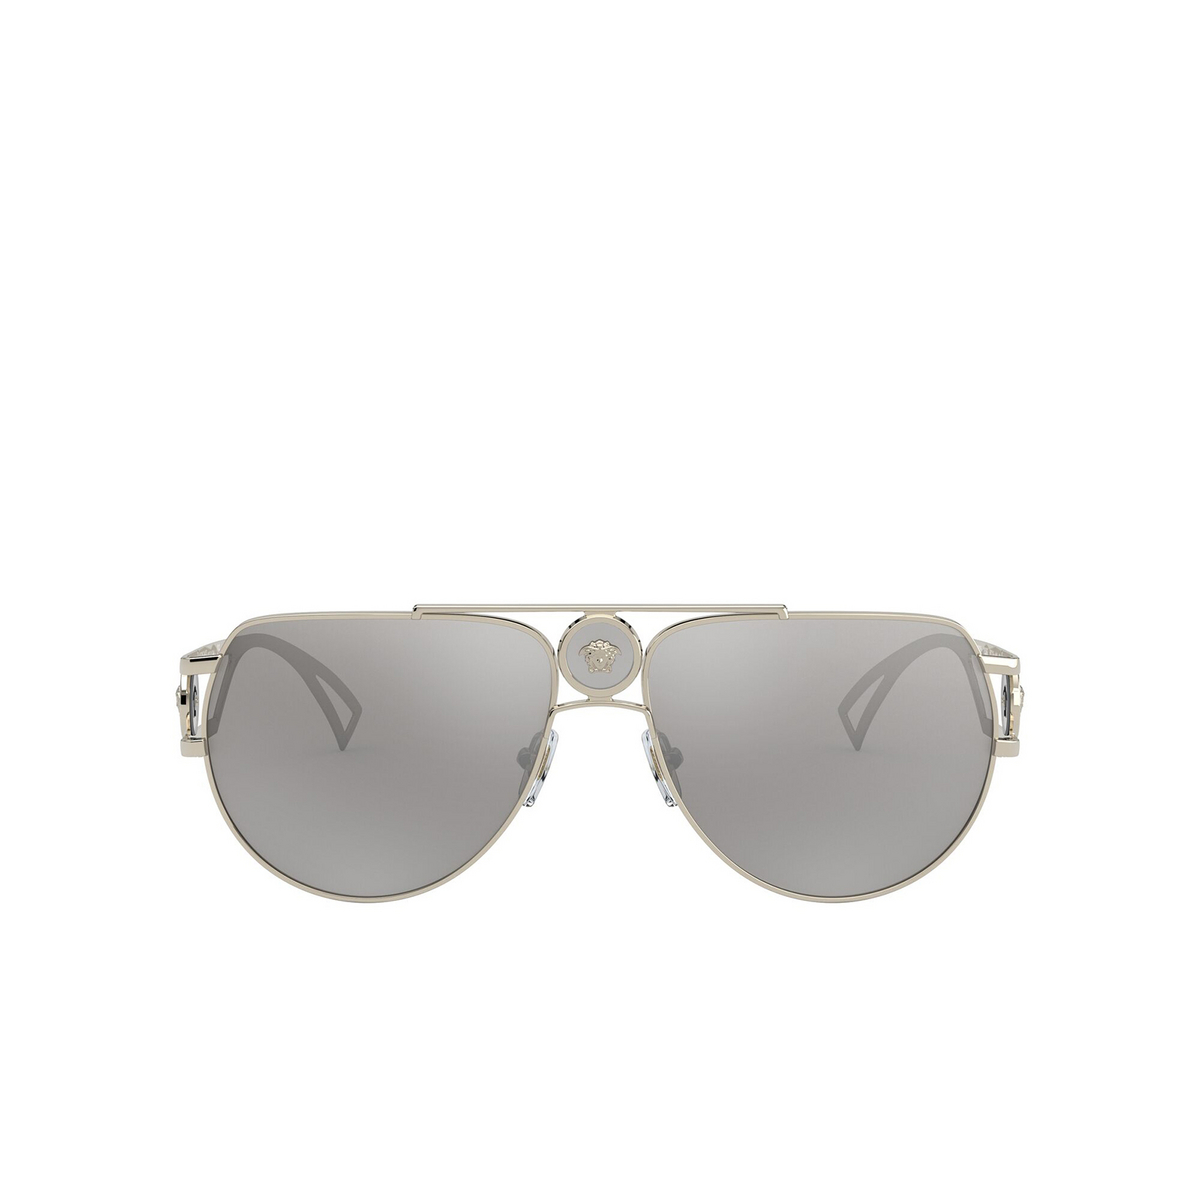 Versace® Aviator Sunglasses: VE2225 color Pale Gold 12526G - front view.